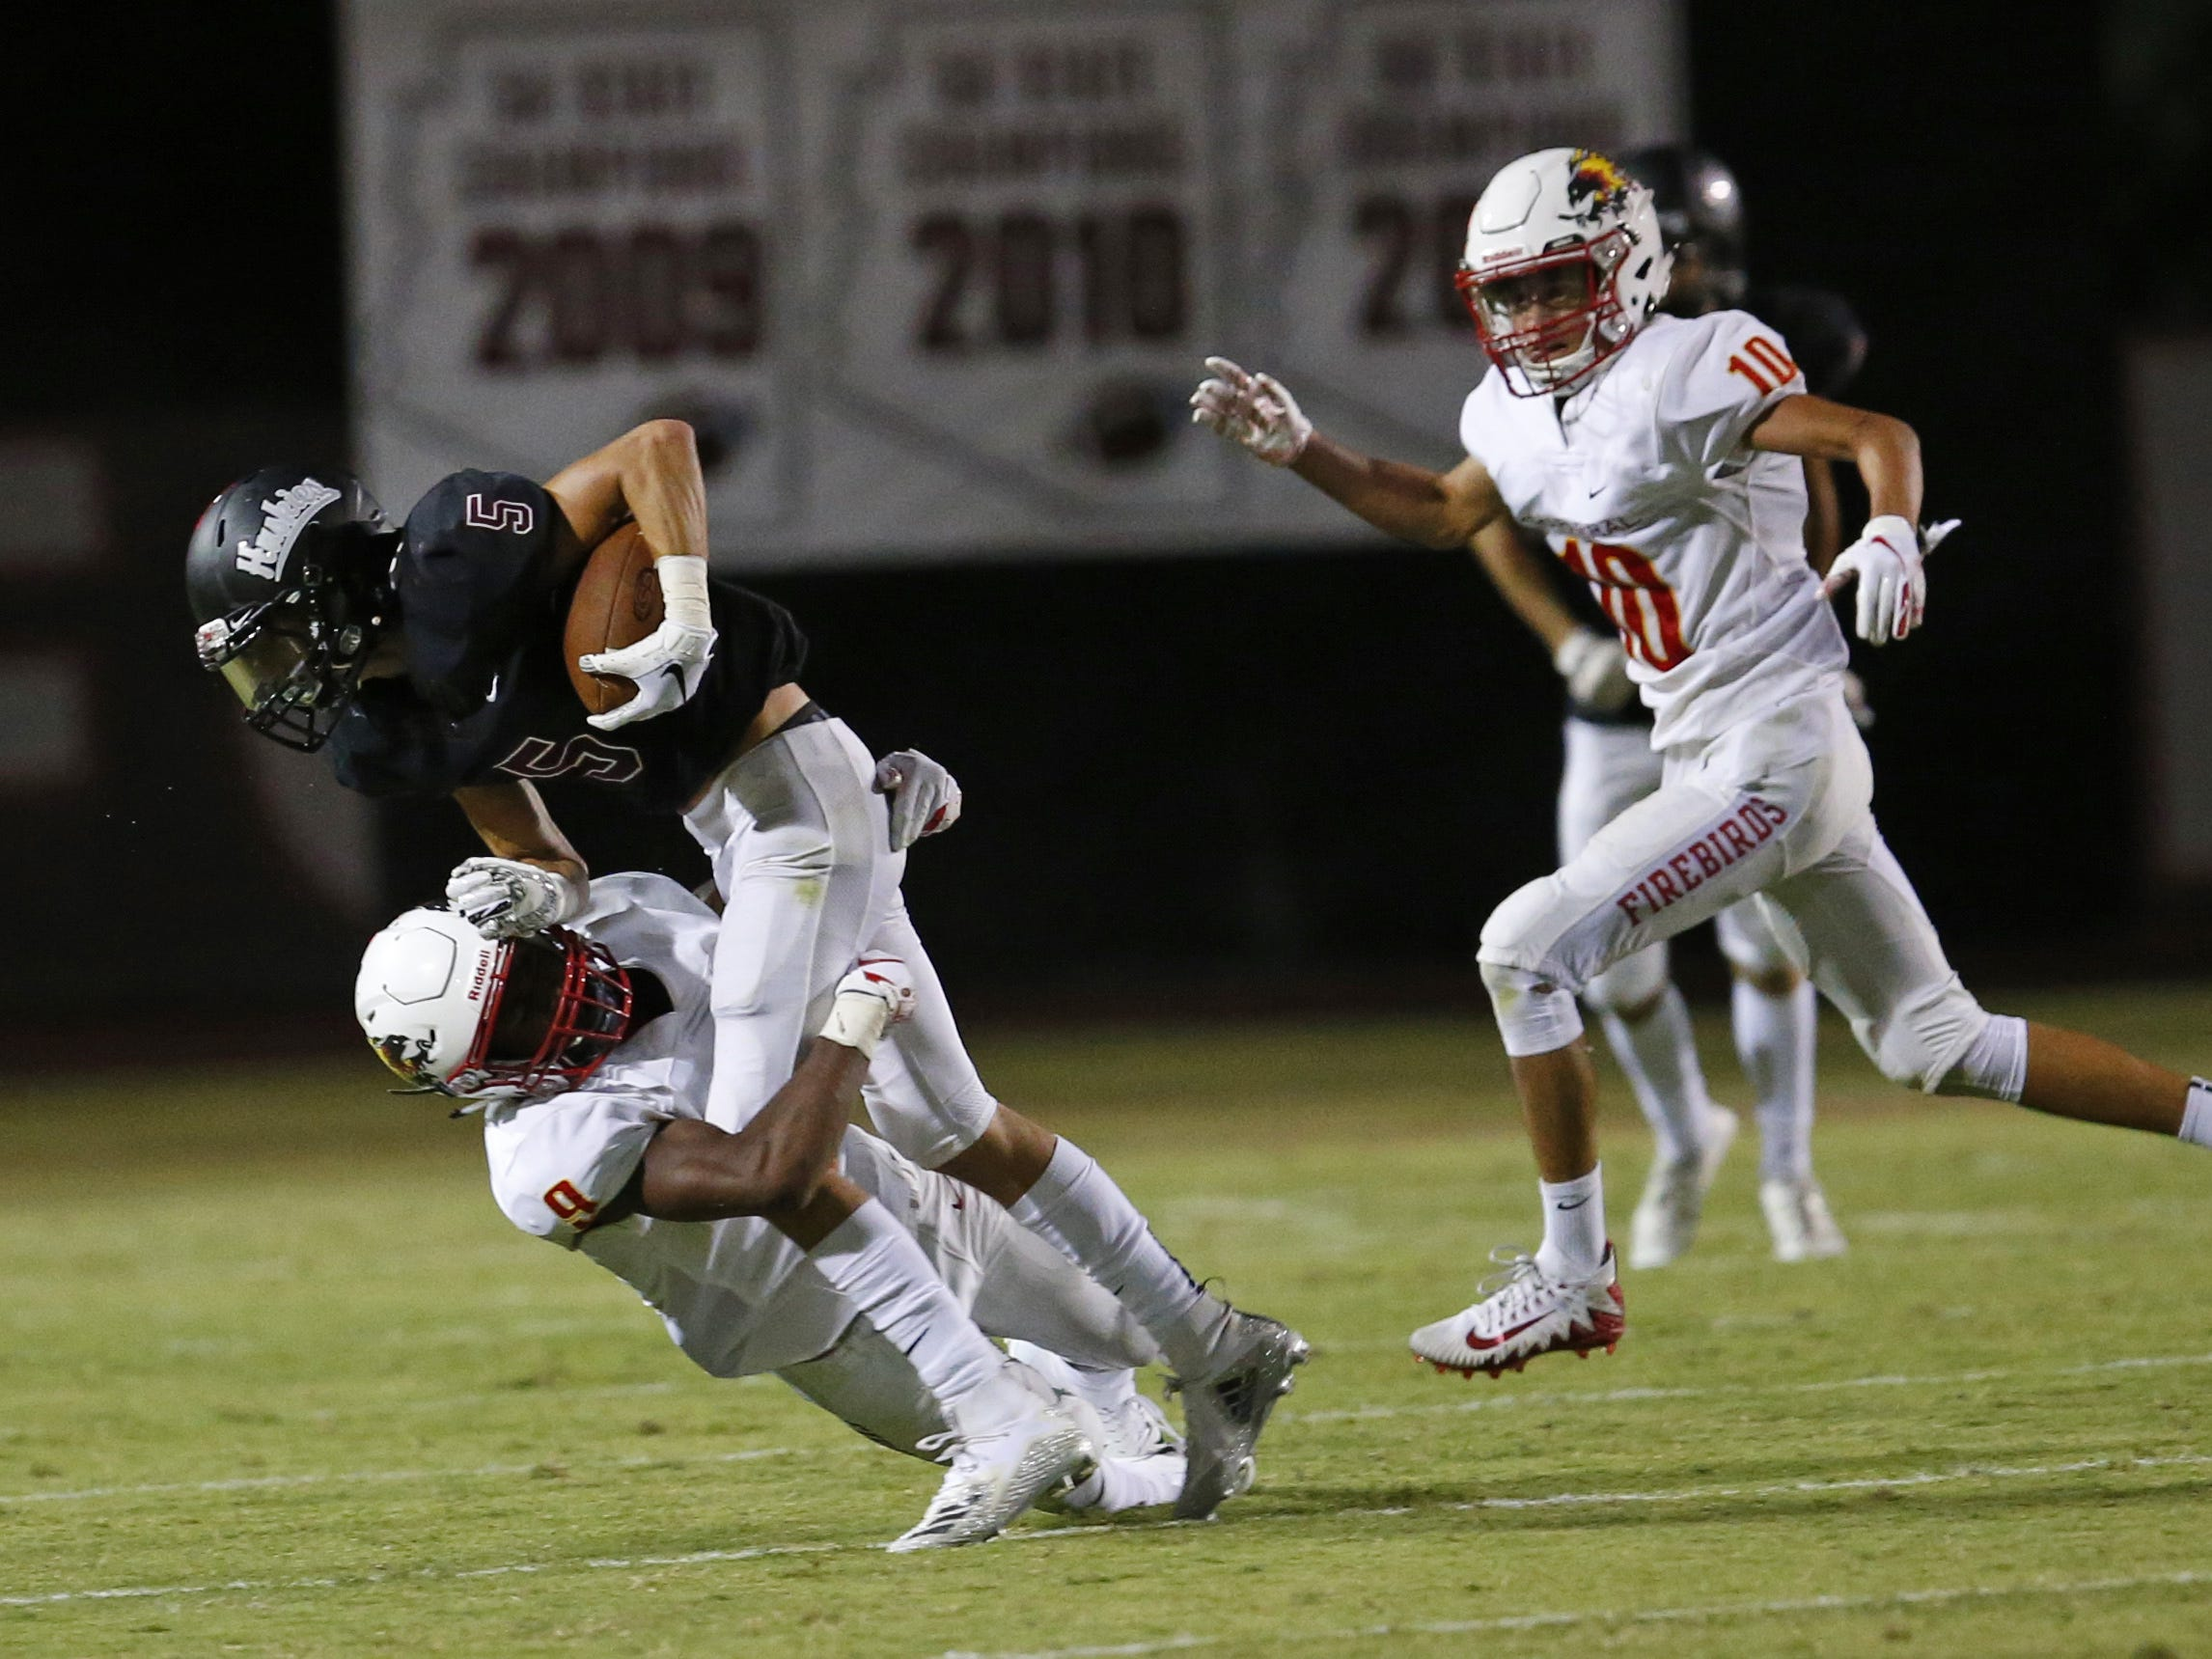 Chaparral Deavon Crawford (9) tackles Hamilton Bryce Danielson (5) during a high school football game at Hamilton in Chandler on August 17, 2018. #hsfb